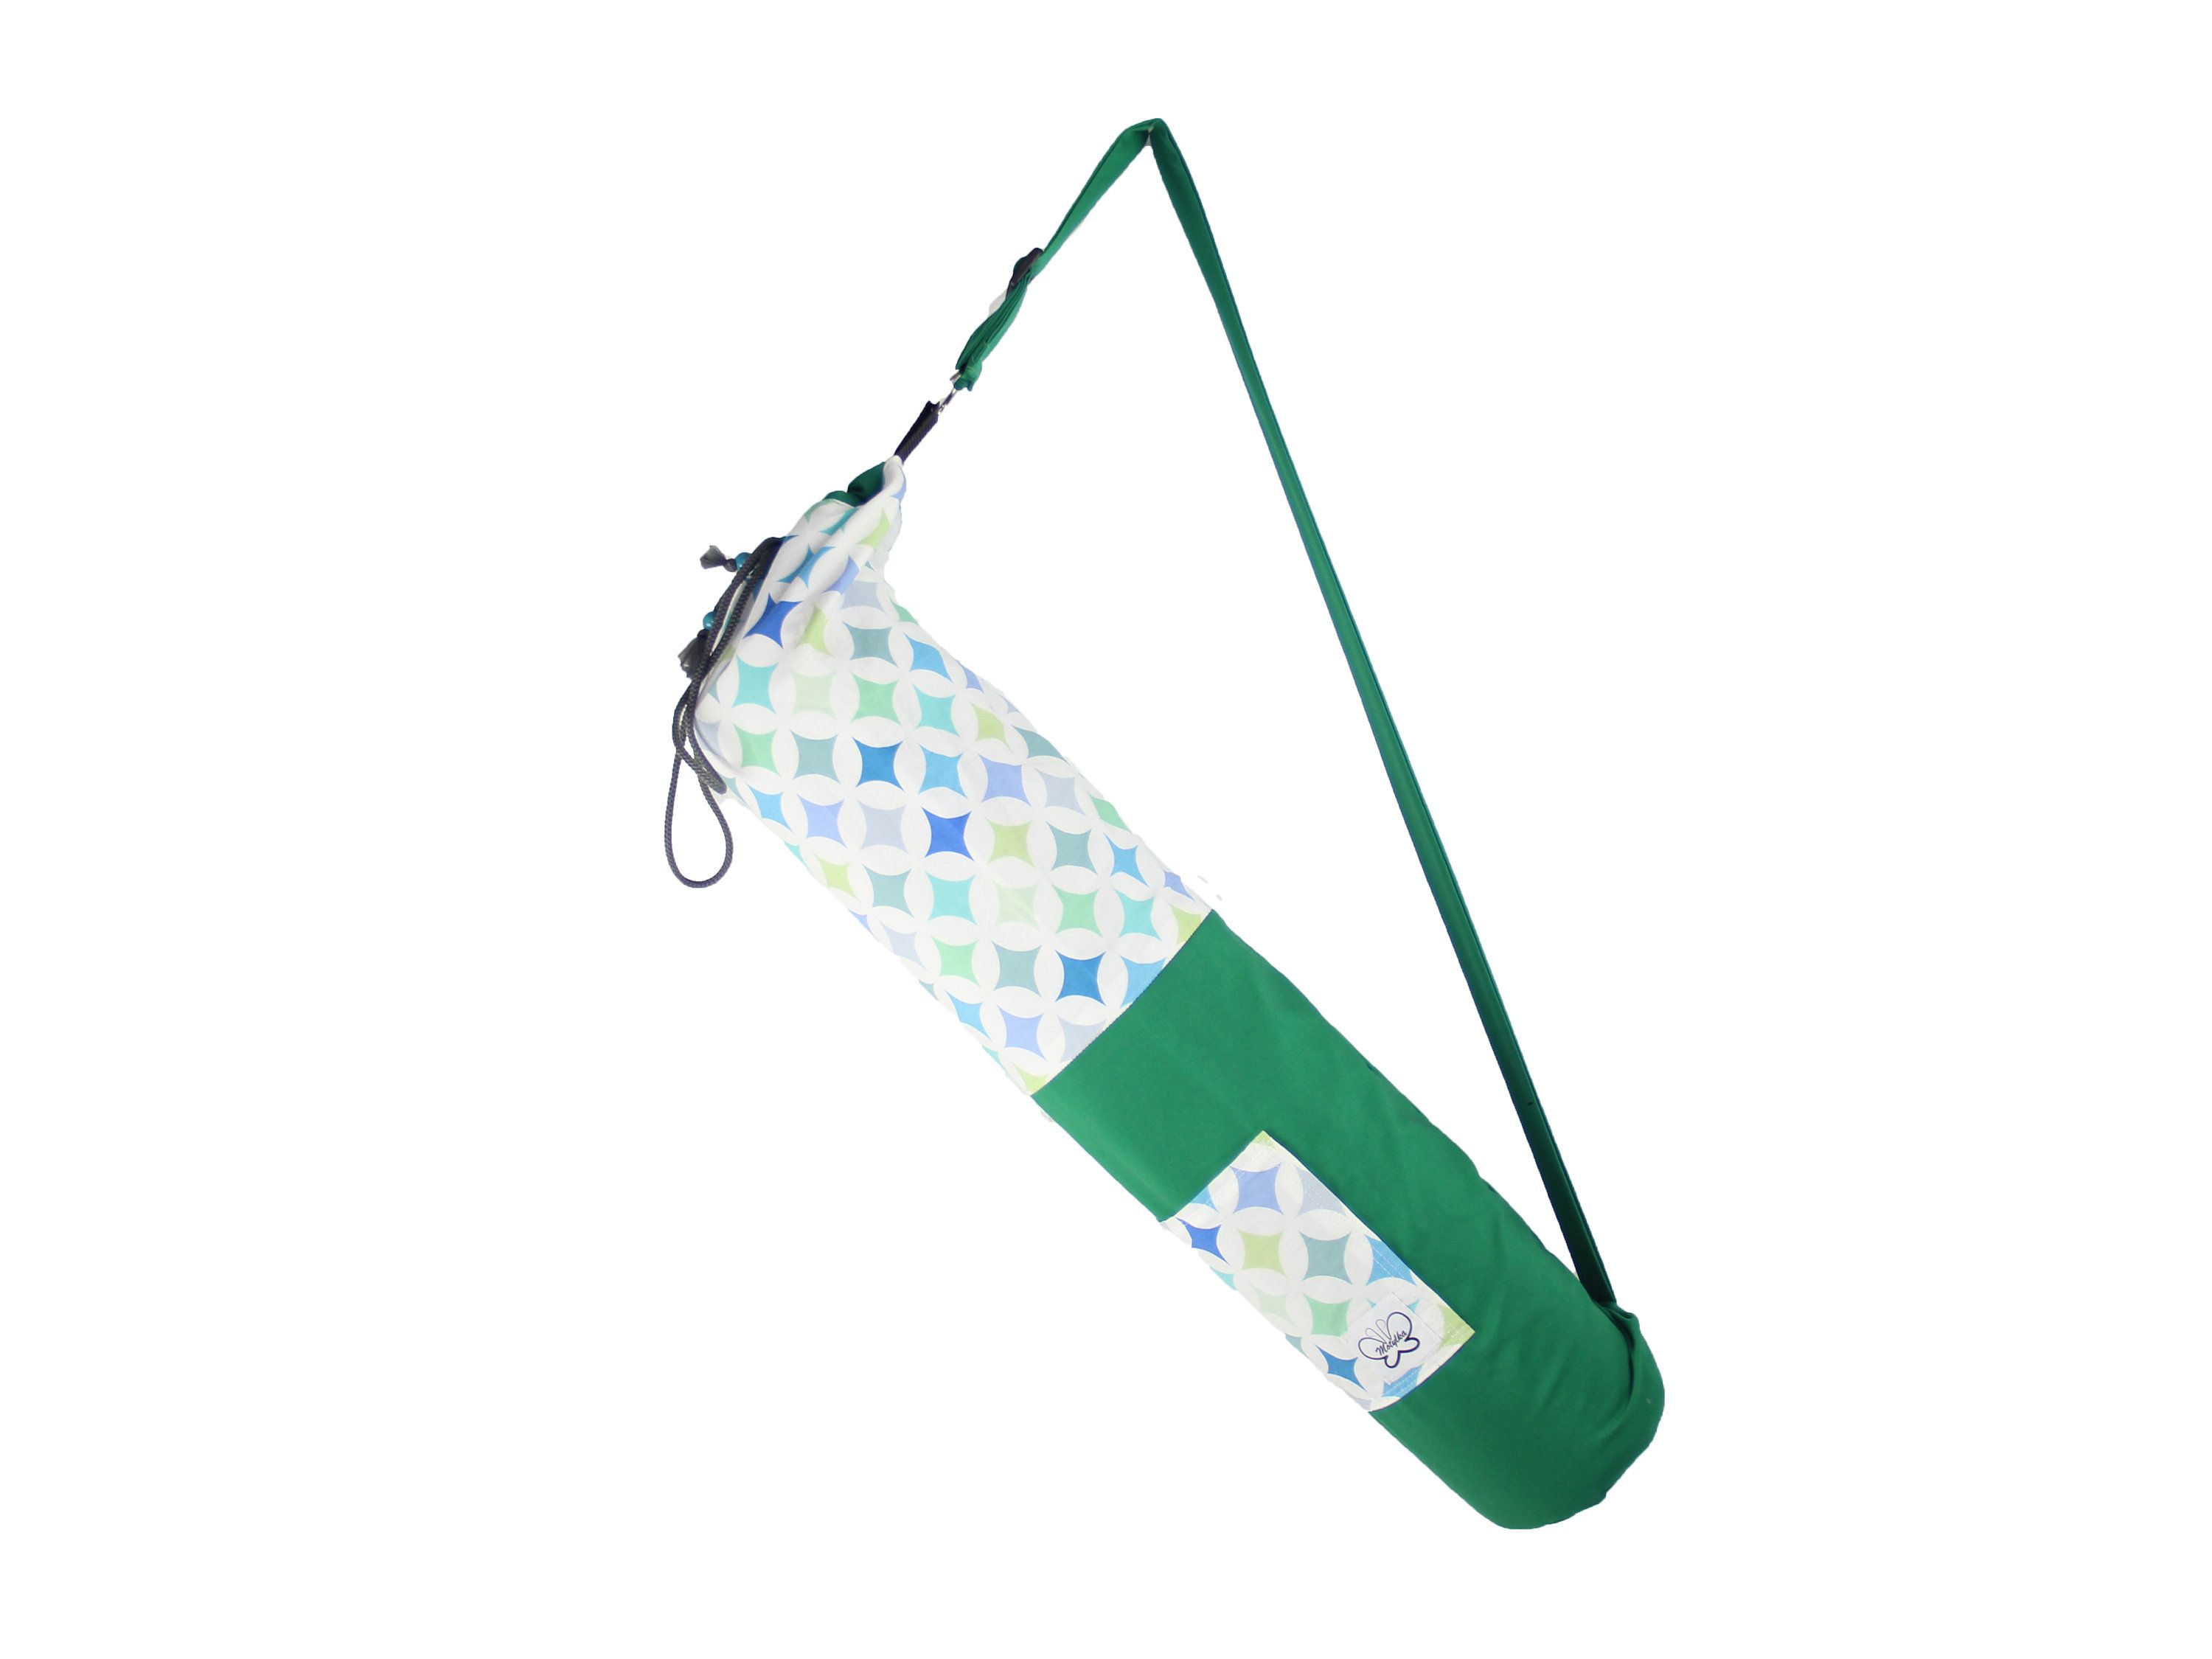 Green And Patterned Stars Cotton Yoga Mat Bag With External Pocket And Lining Fits Standard Mat Comes With Personalised Keychain Mat Bag Personalized Keychain Yoga Mat Bag